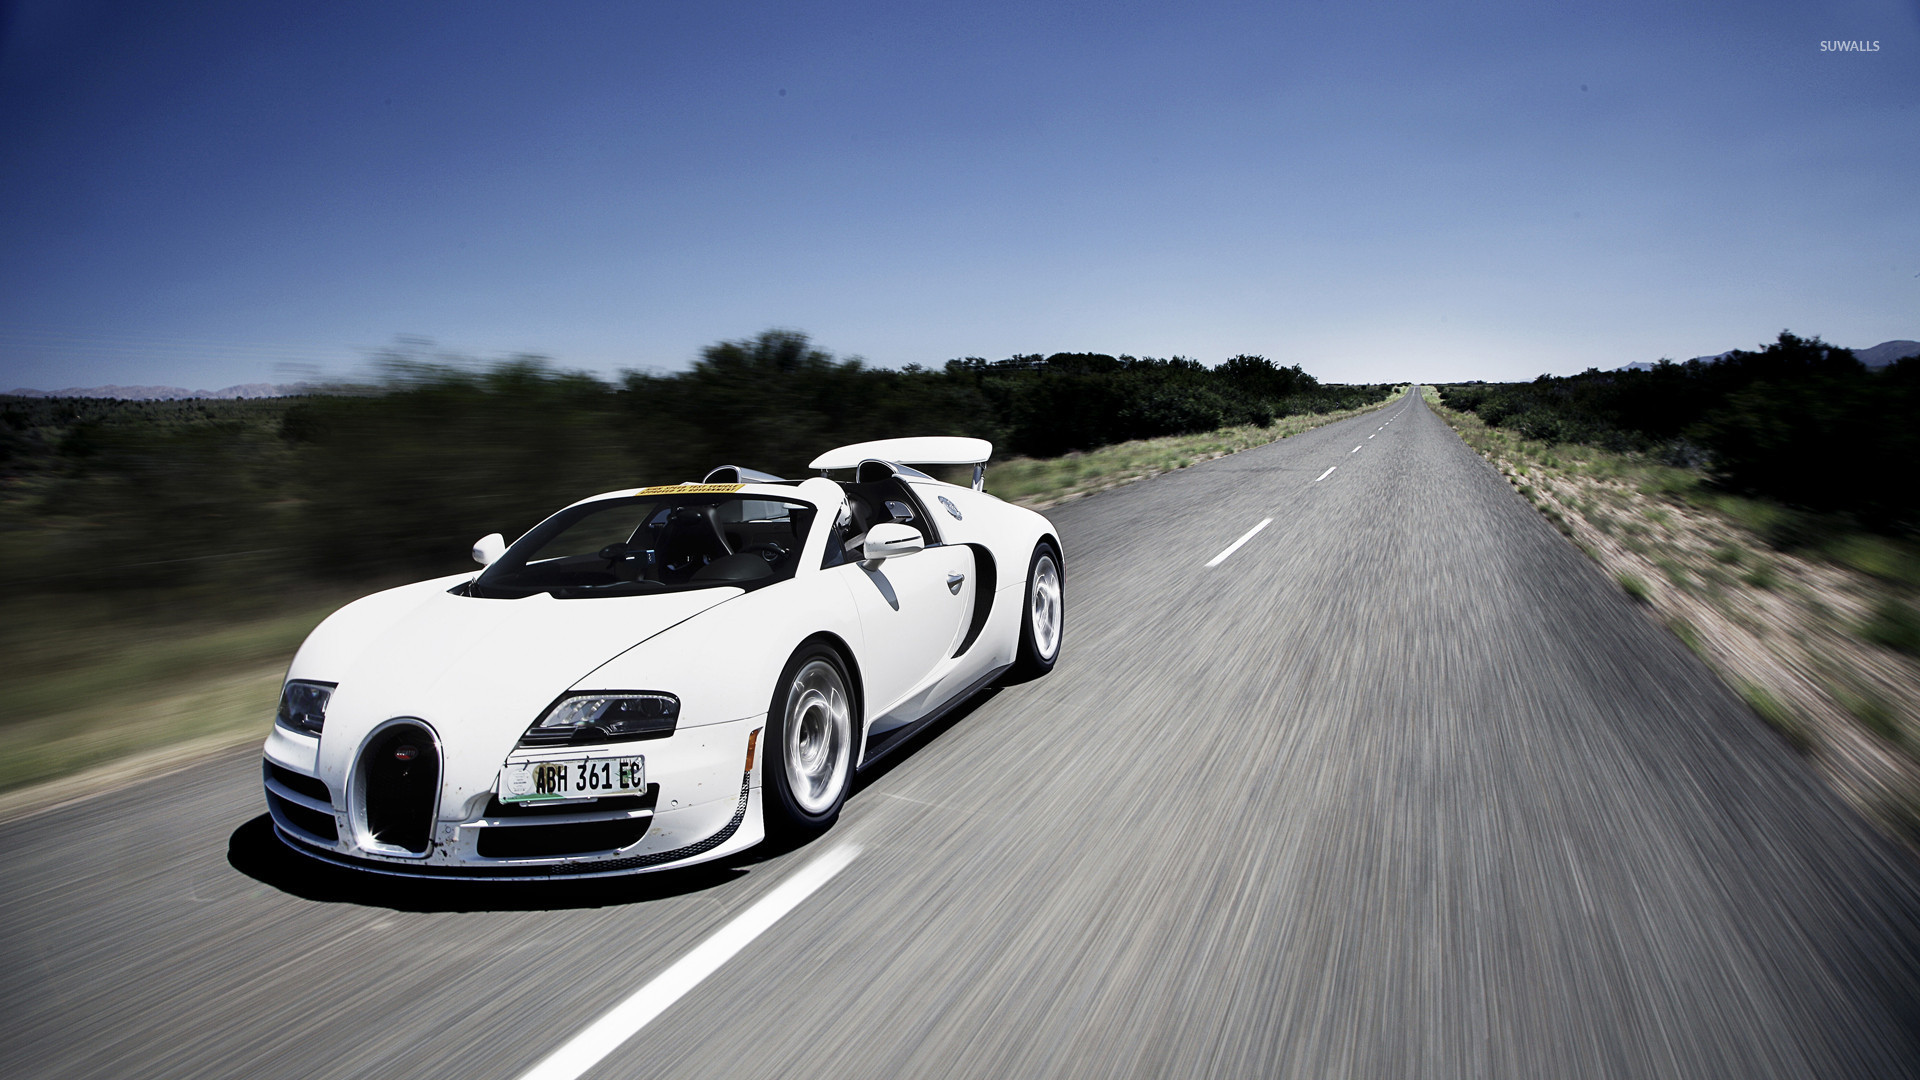 2013 bugatti veyron grand sport vitesse 2 wallpaper car wallpapers 26334. Black Bedroom Furniture Sets. Home Design Ideas